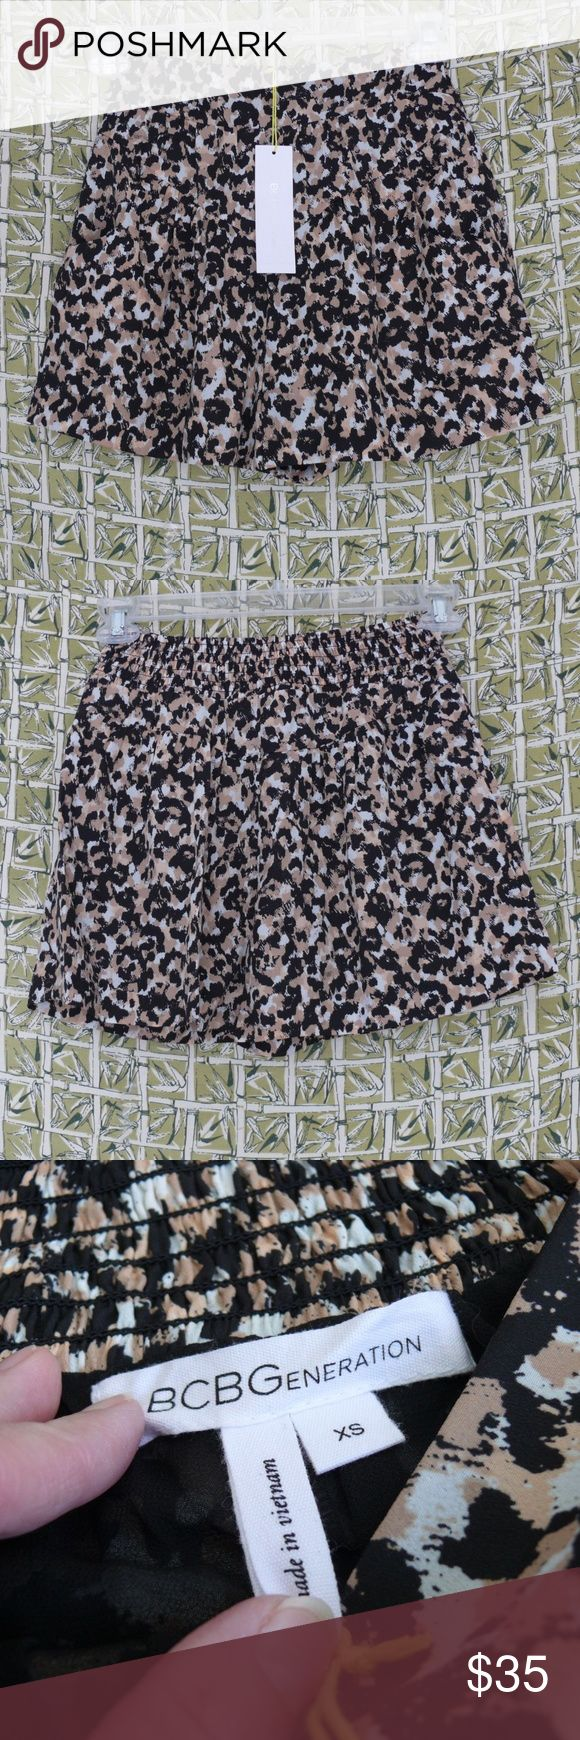 """BCBGeneration XS Shorts Animal Print Pockets Lined BCBGeneration   New With Tags  Women's Shorts   Animal Print   Side Pockets   Fully Lined   Elastic Back Panel   Dark Buff-Beige Multi   Tag Size XS  The following measurements are approx.  and taken with the shorts laid flat  Waist - 12 1/2"""" Overall Length - 14 1/2"""" BCBGeneration Shorts"""